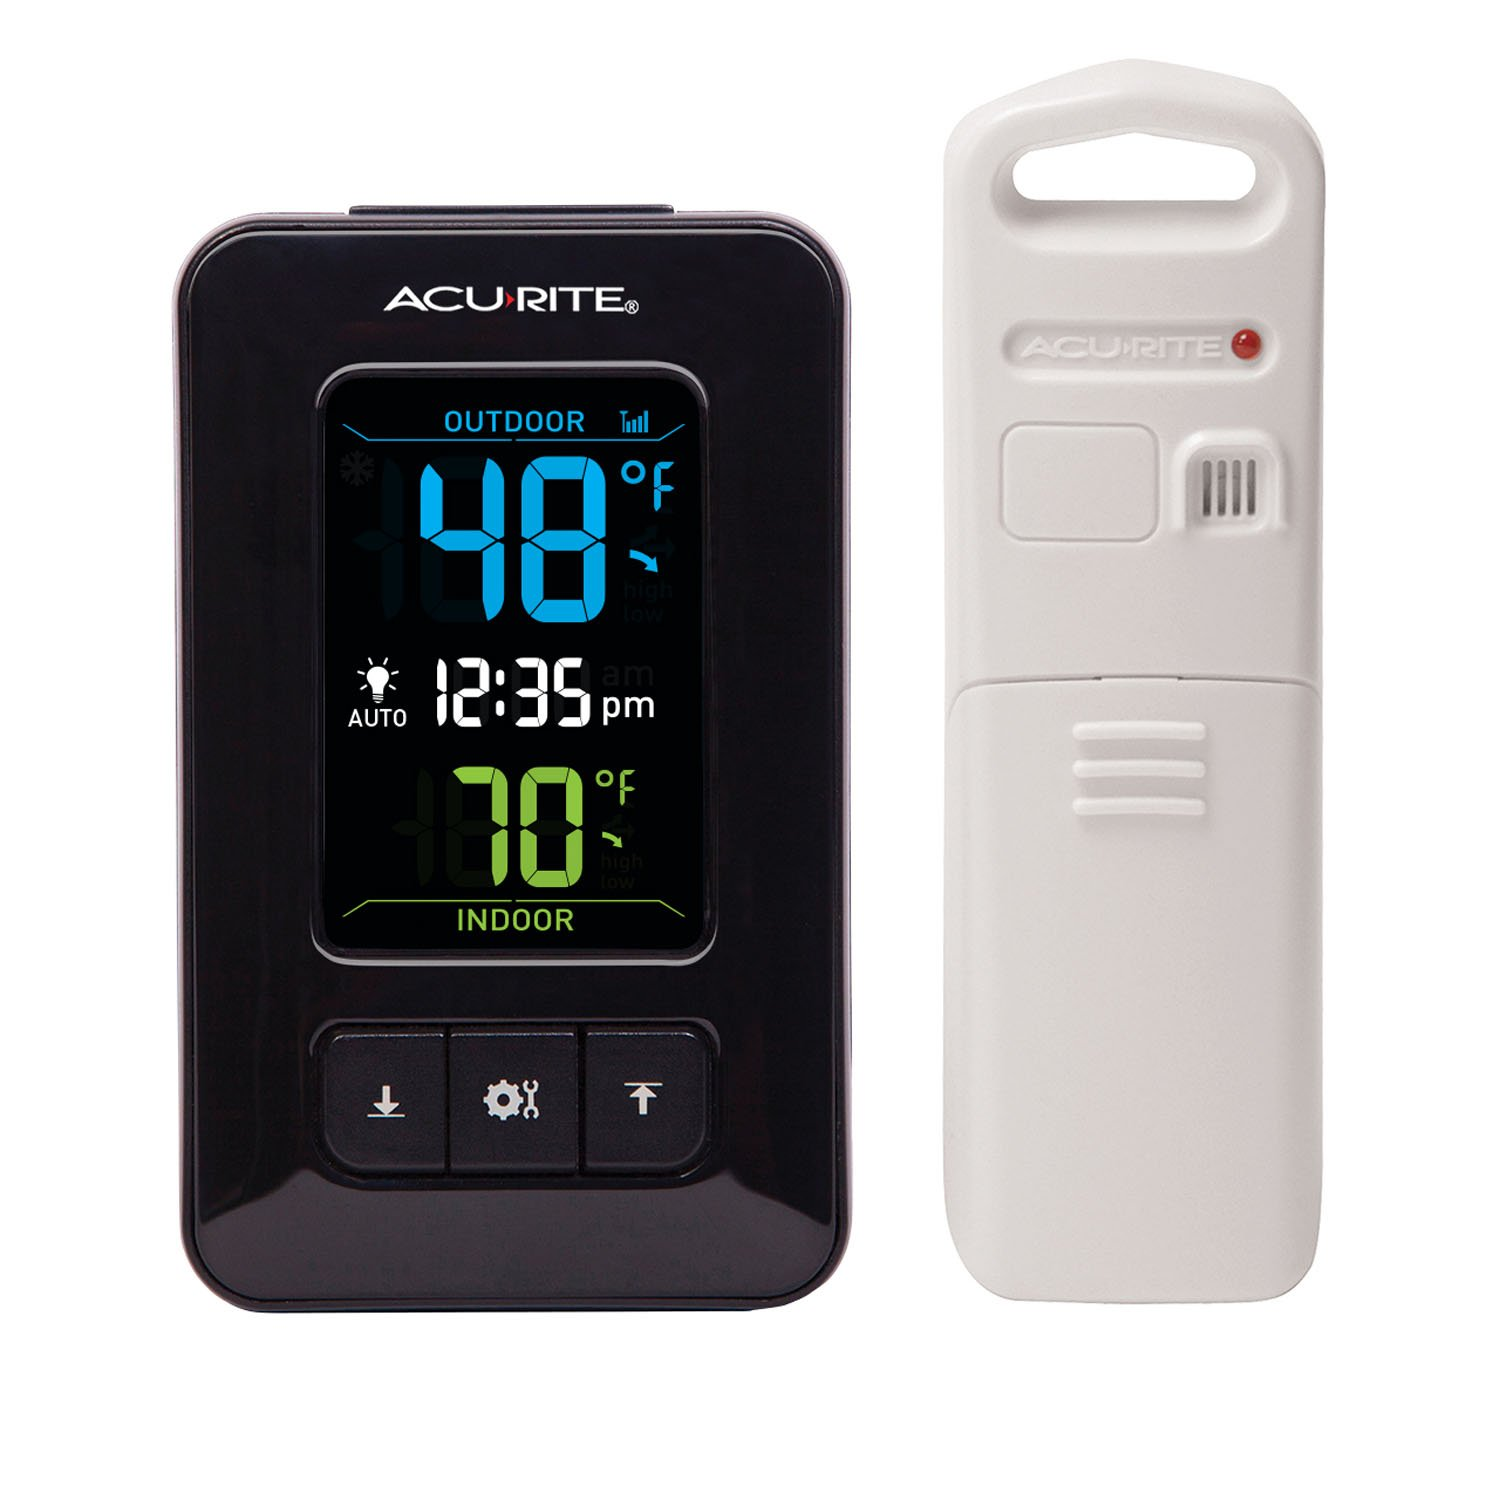 AcuRite 02023 Digital Indoor/Outdoor Thermometer with Clock